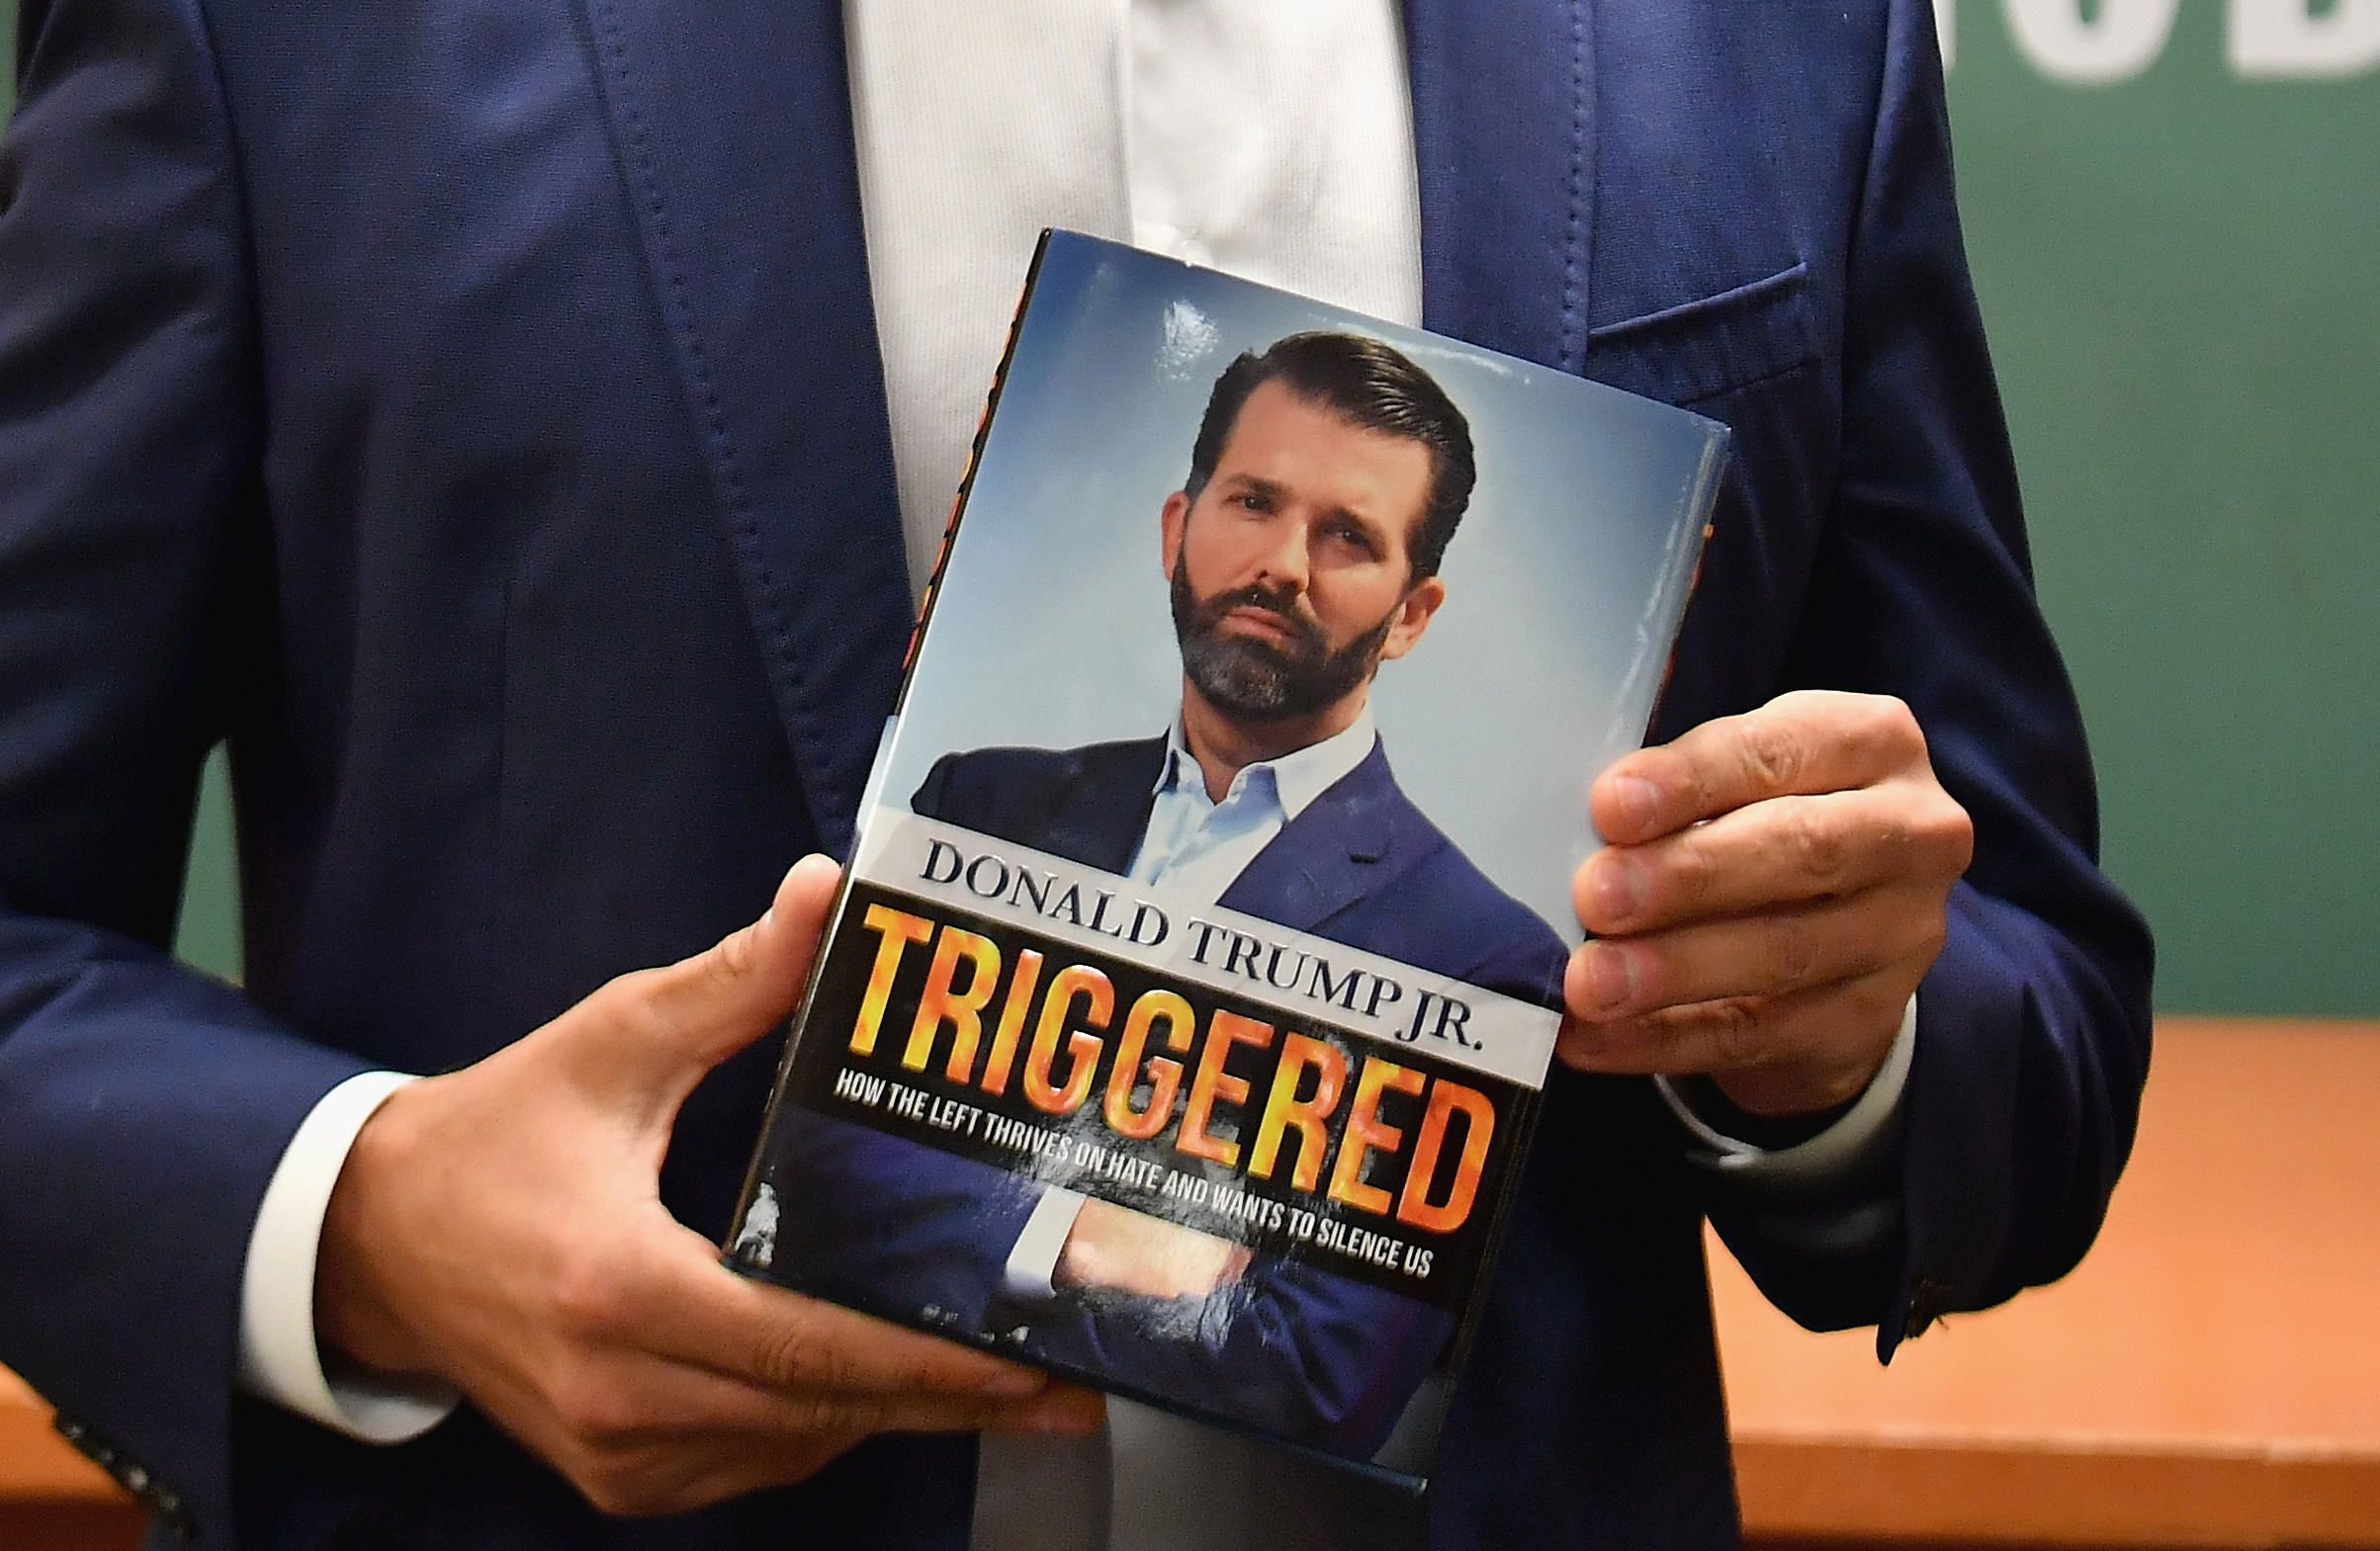 Behind the Controversy Over Donald Trump Jr.'s Bestseller Status